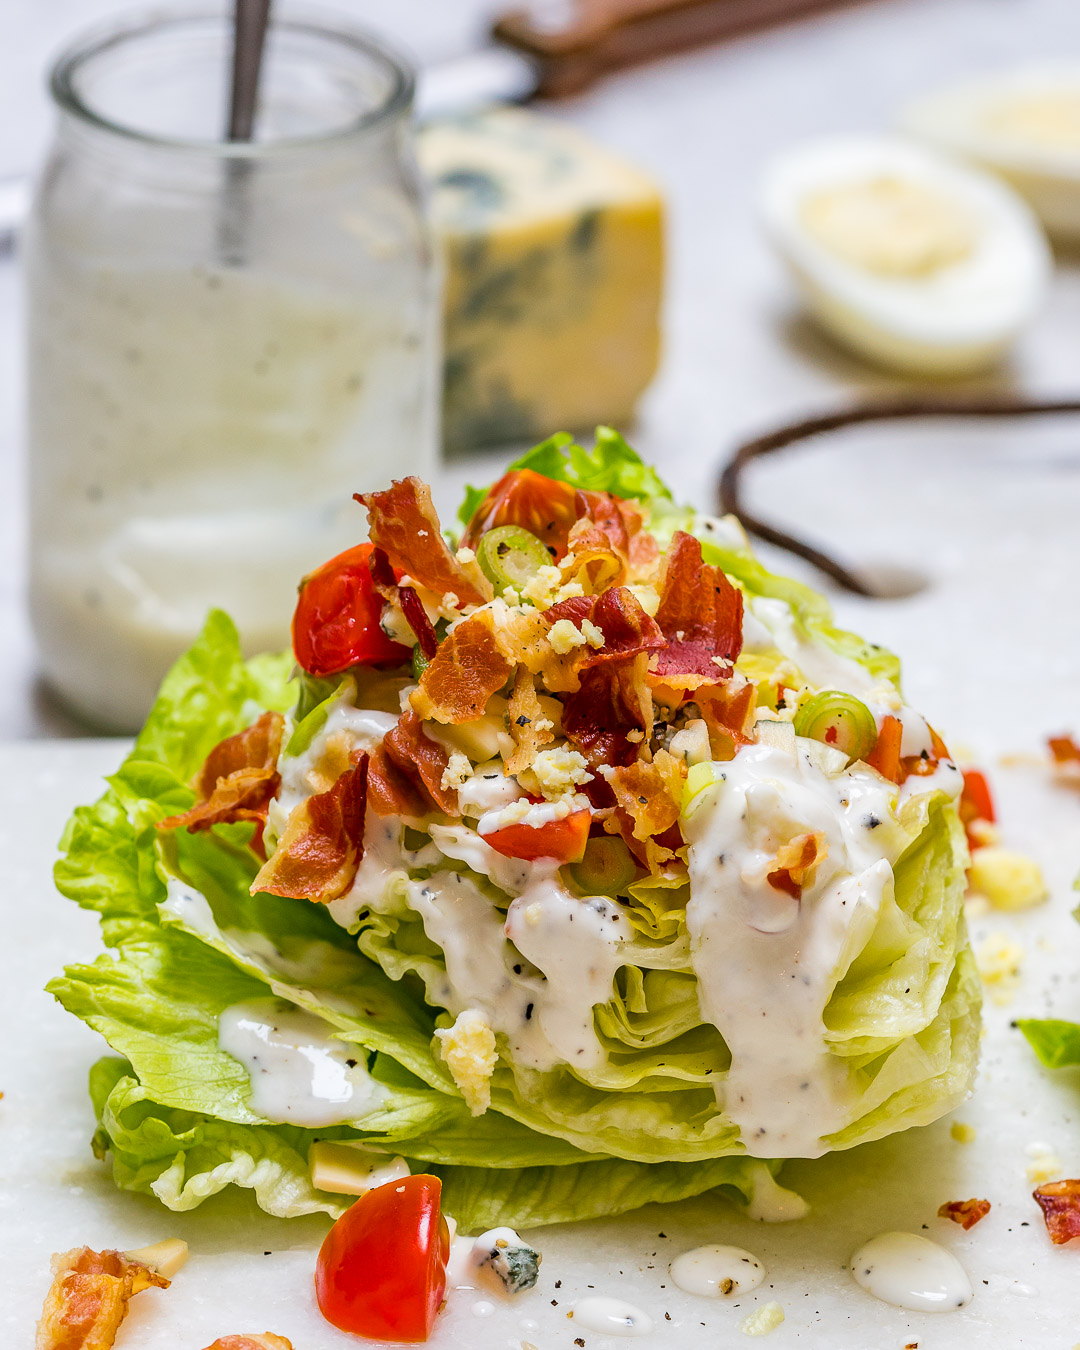 Loaded Iceberg Wedge Clean Eating Salad